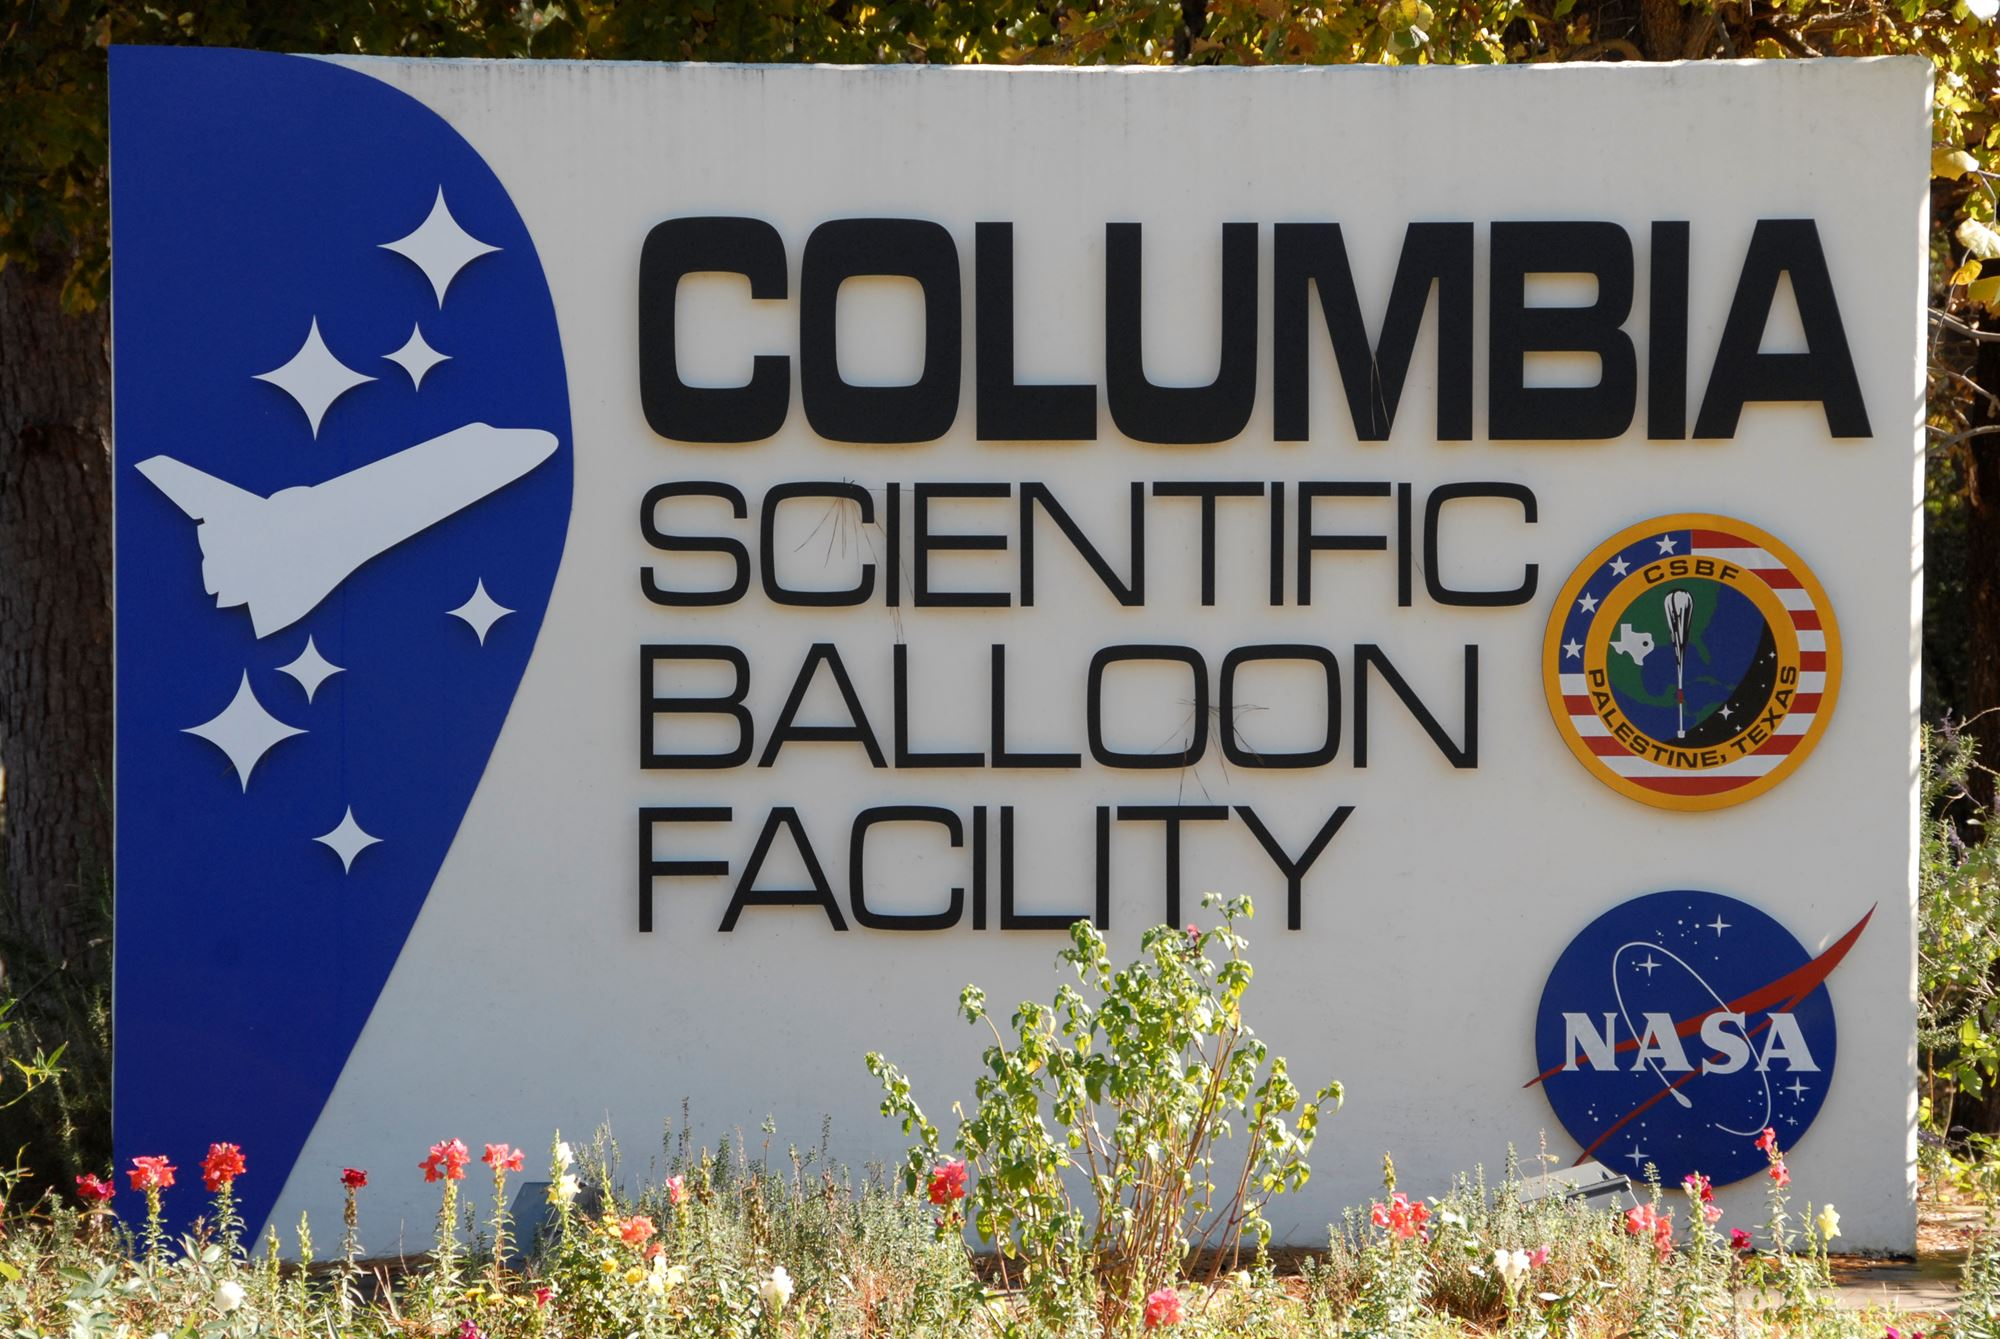 Columbia Scientific Balloon Facility